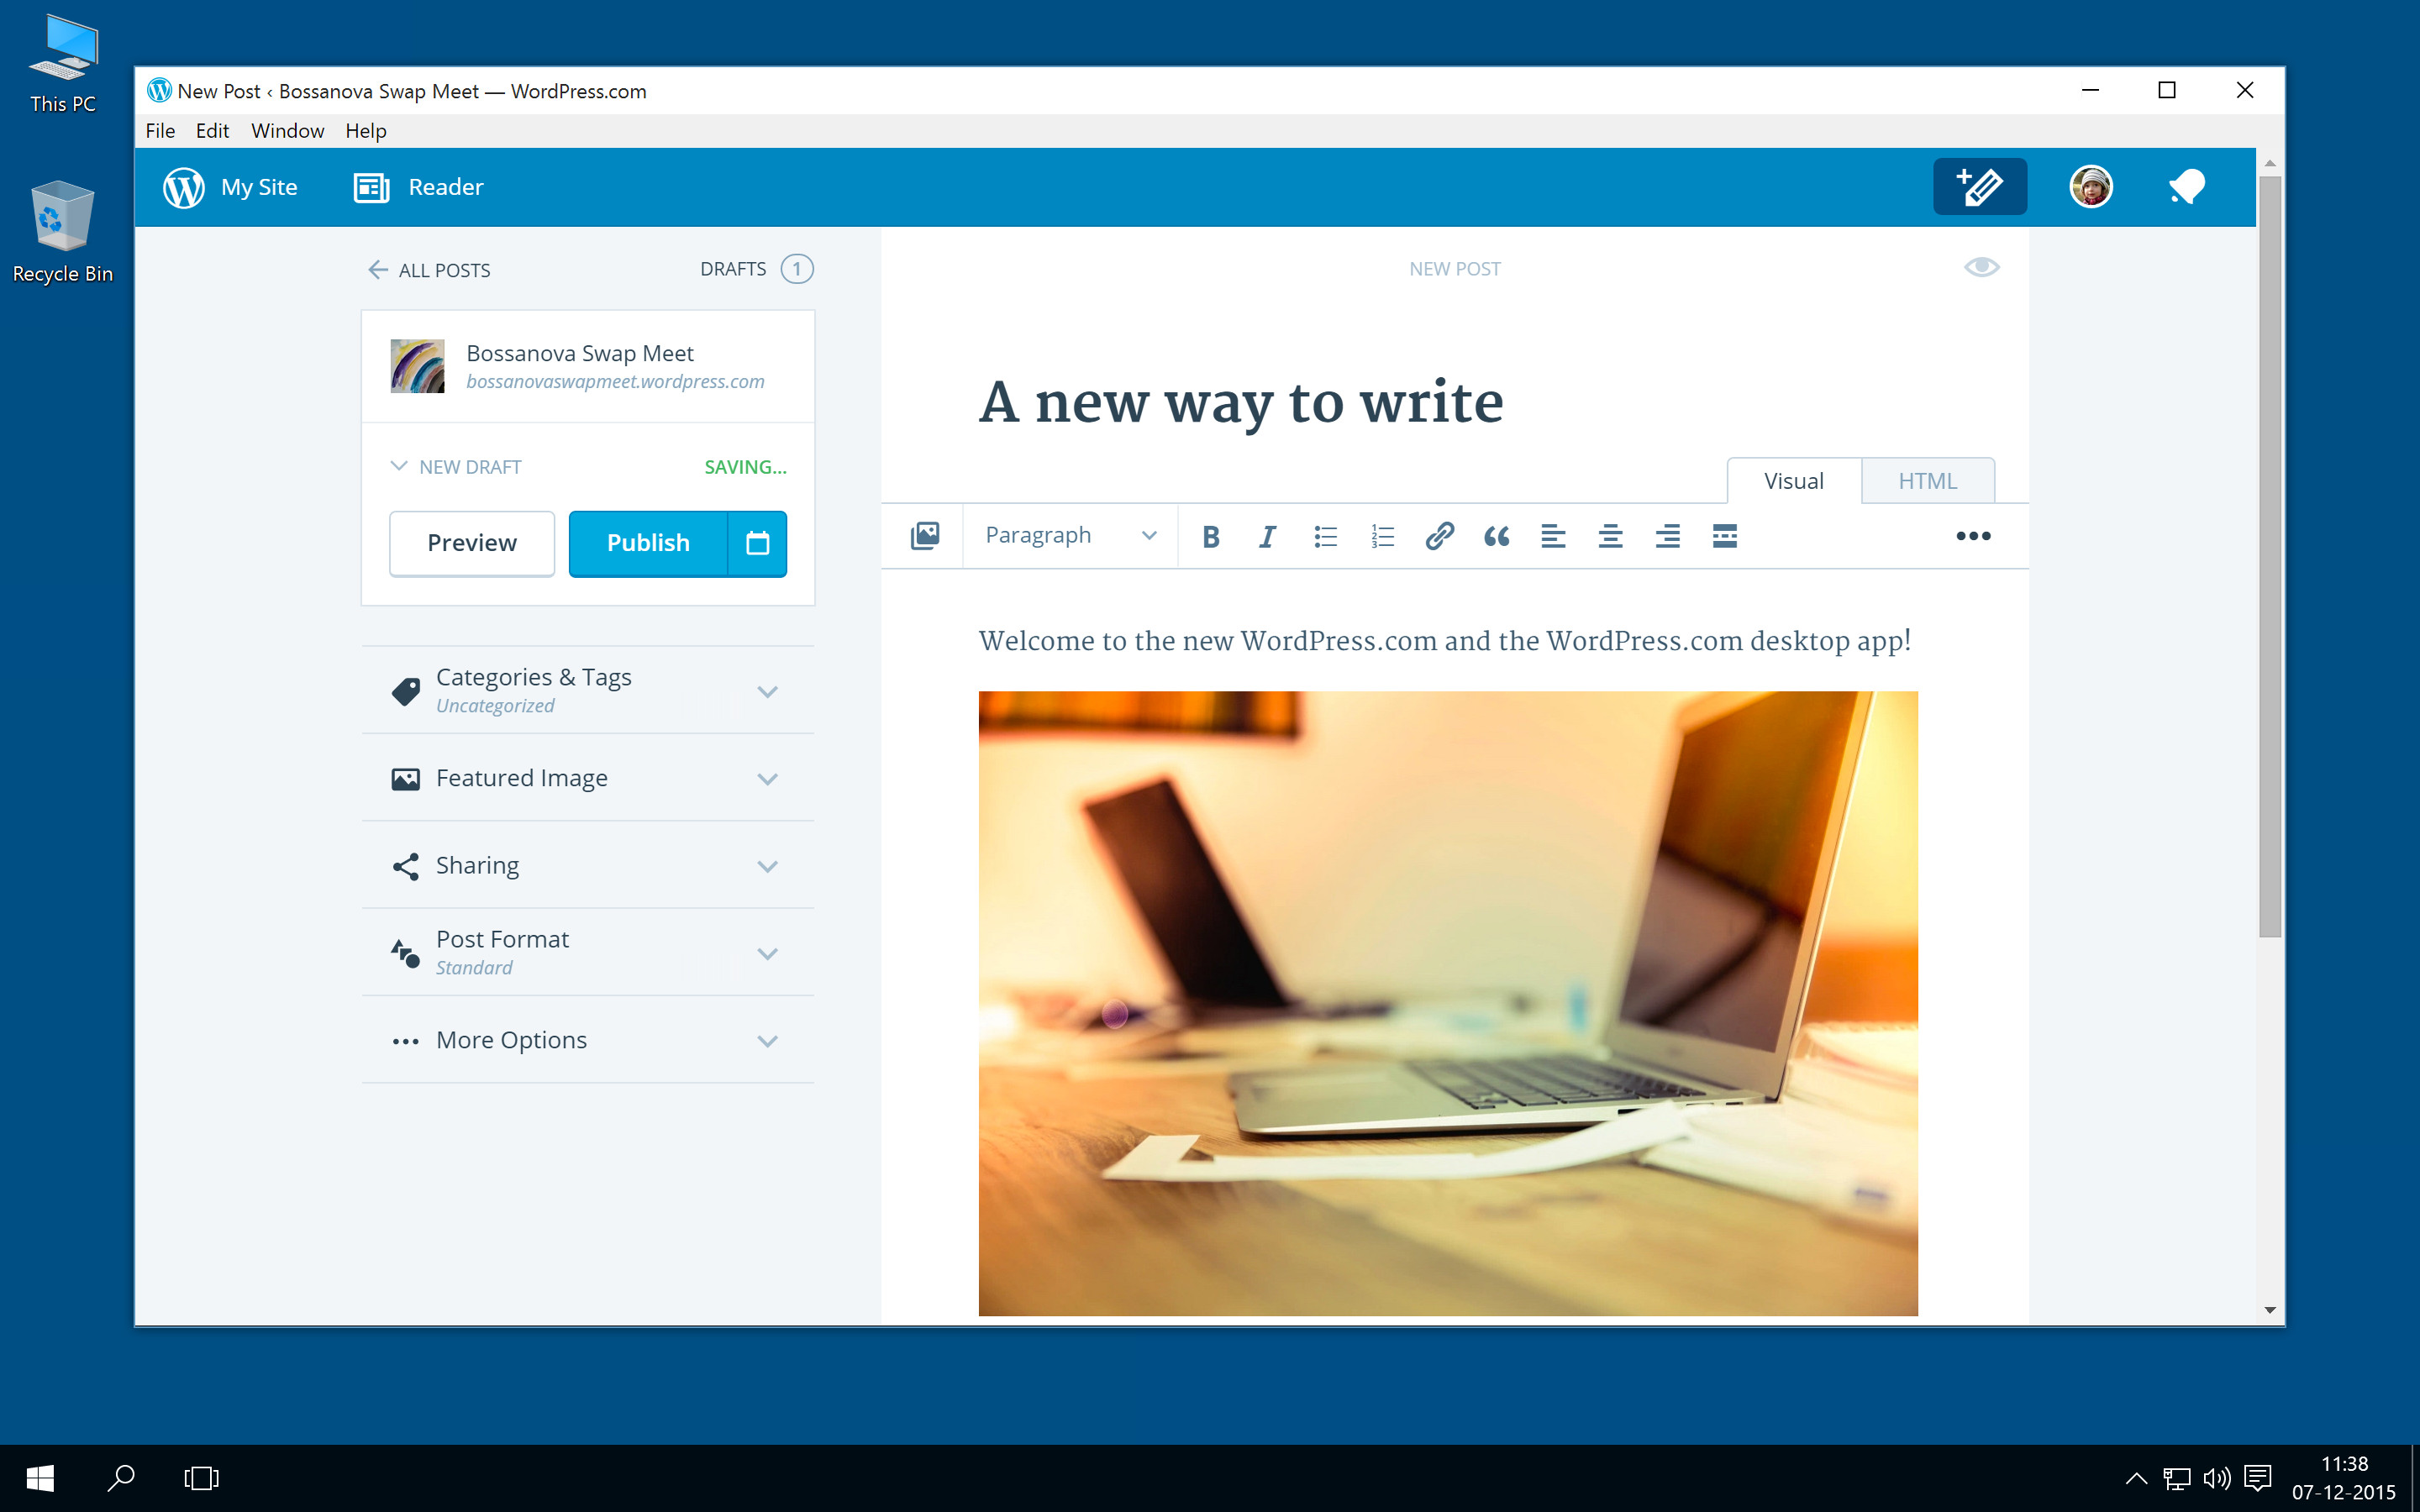 WordPress com launches new app for Windows - Neowin